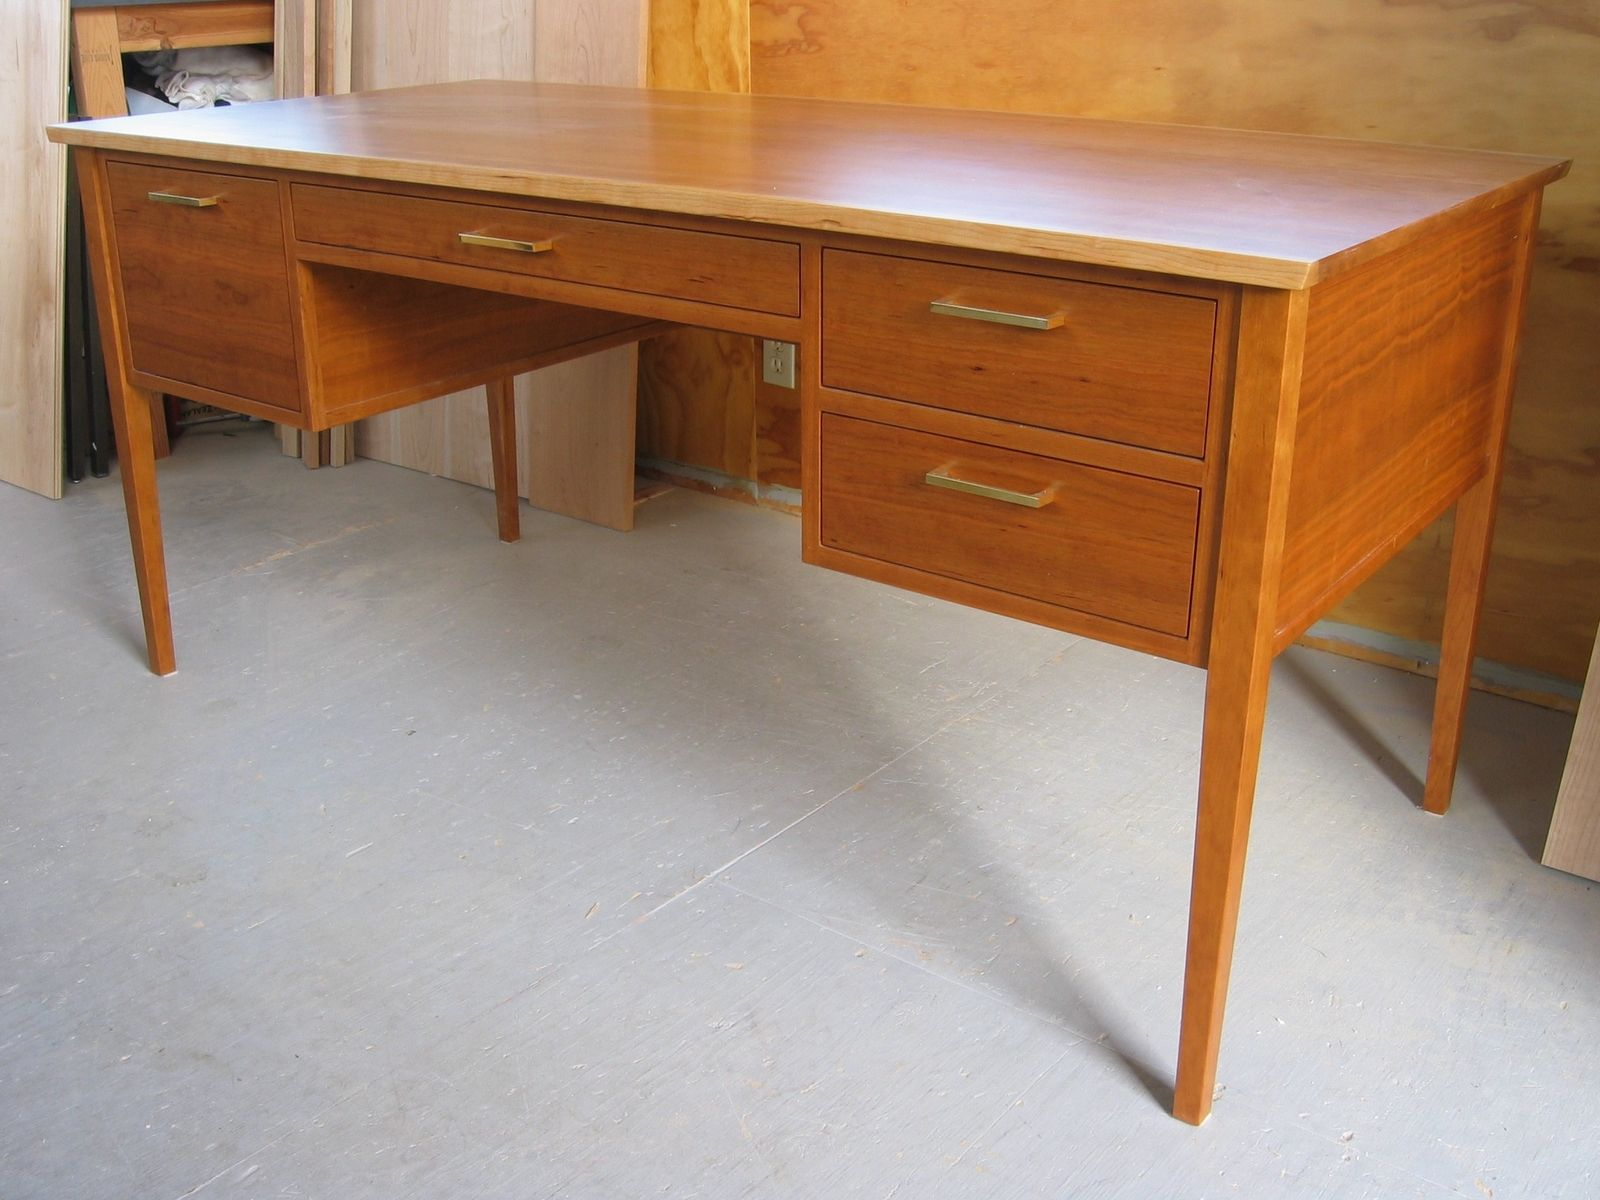 table essay writing custom made writing desk essay writing affiliate custom made writing desk